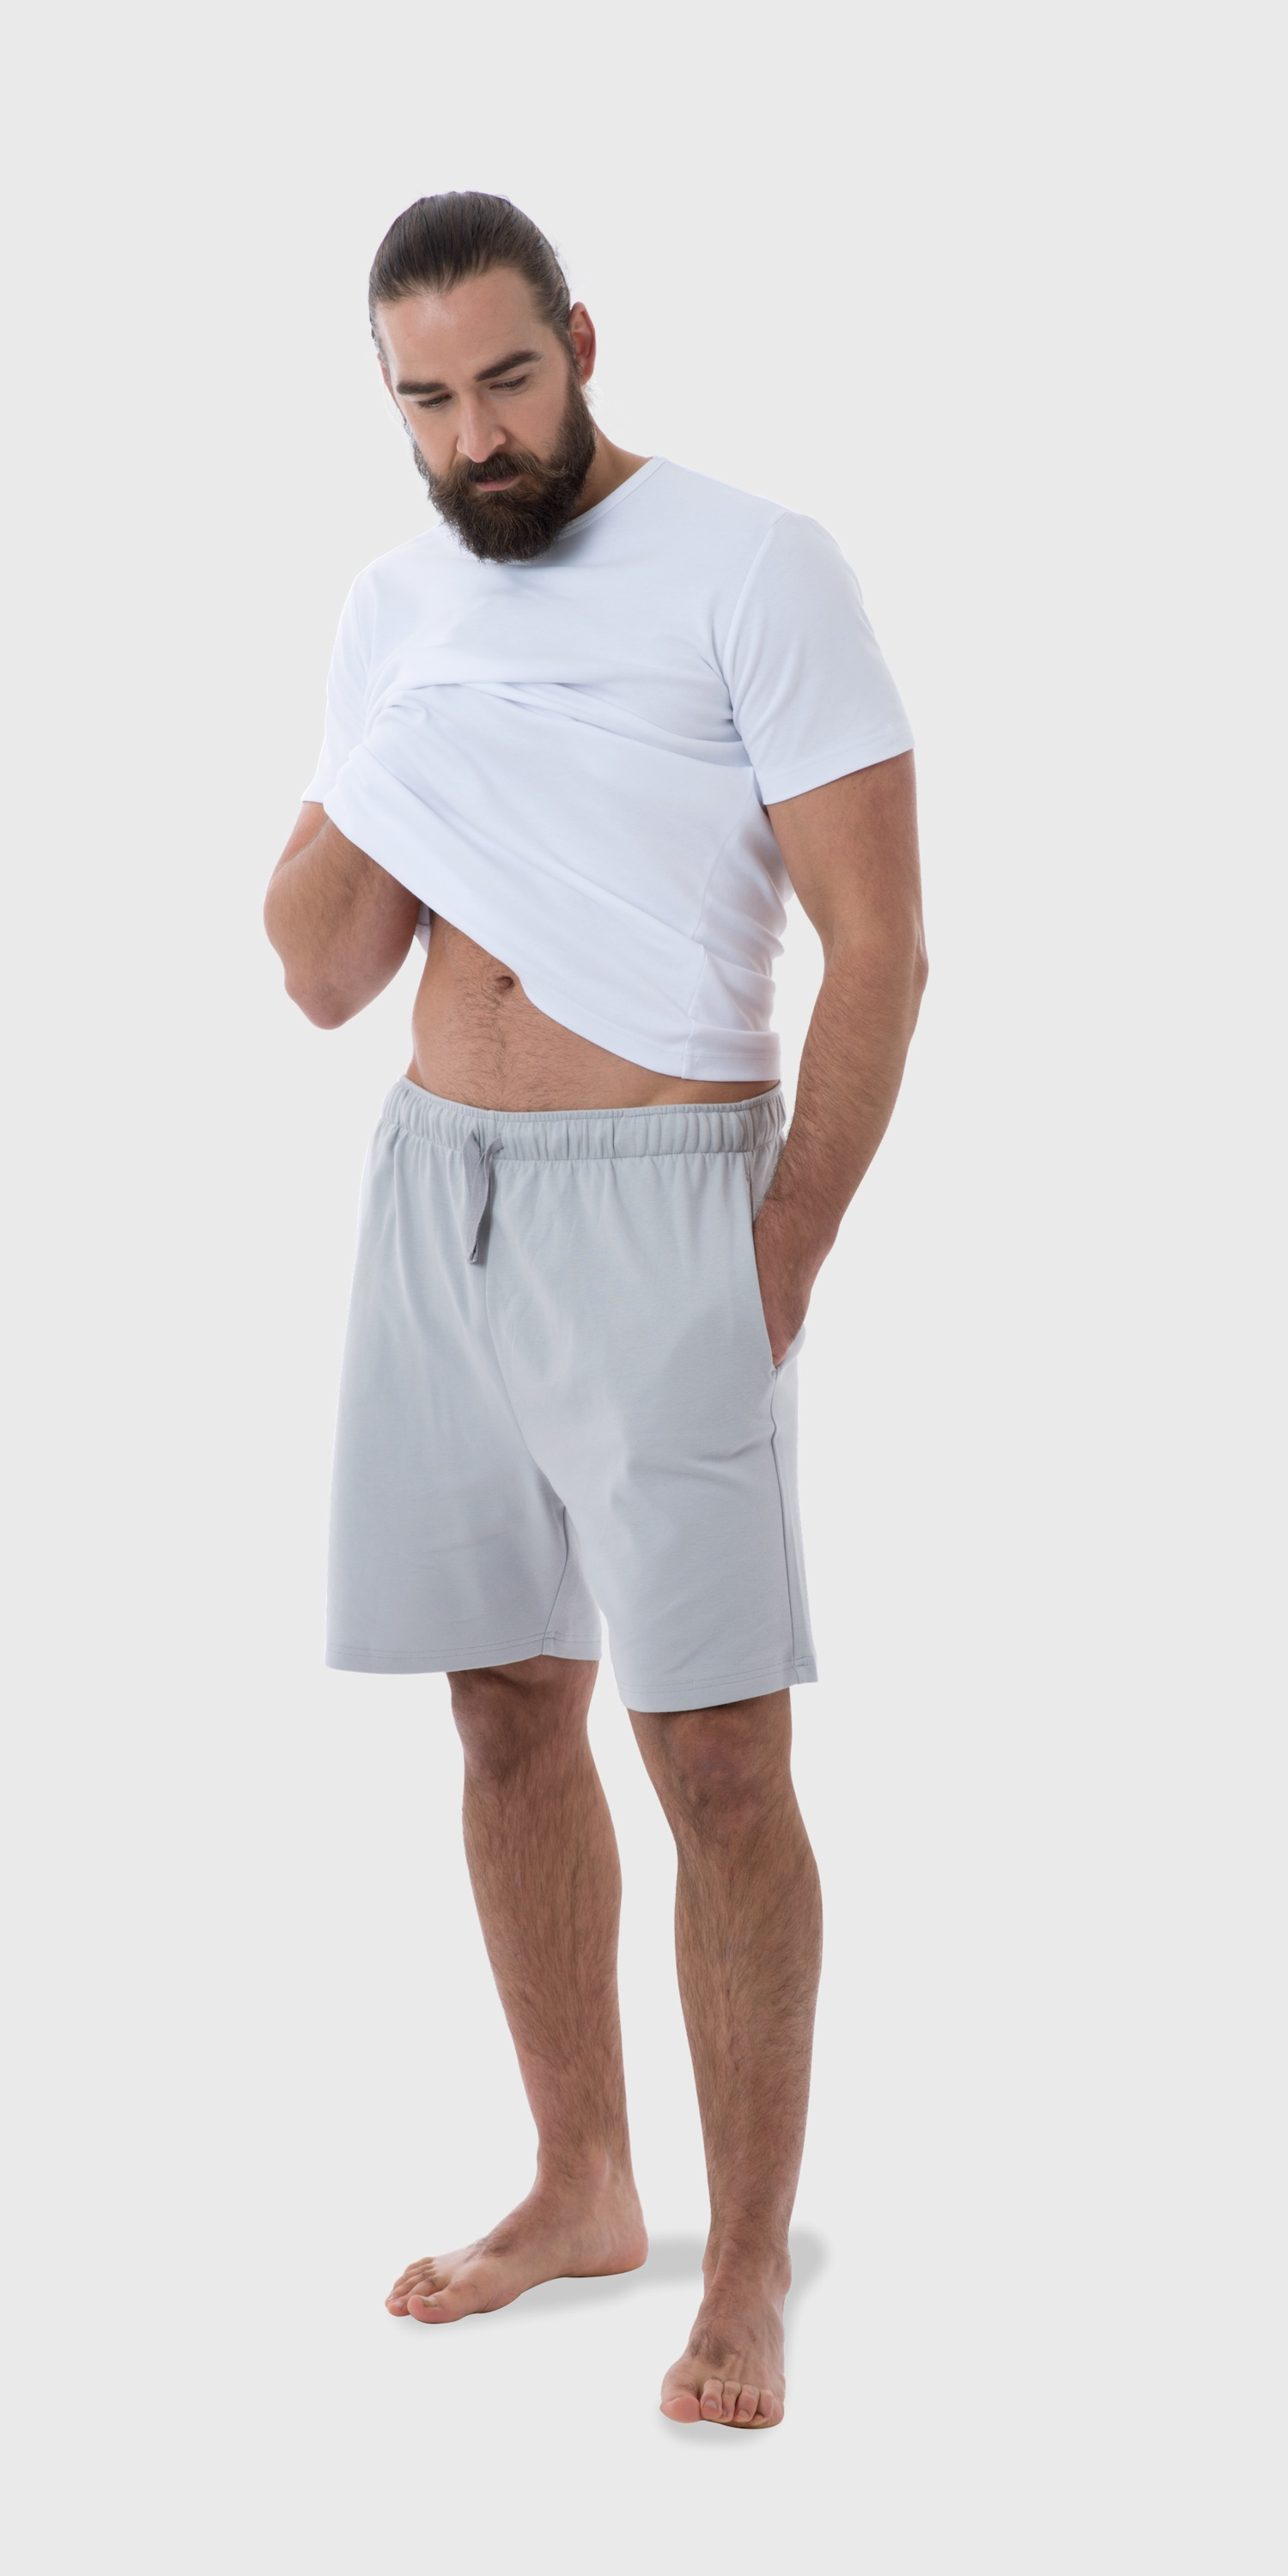 mens-organic-cotton-sleep-shorts